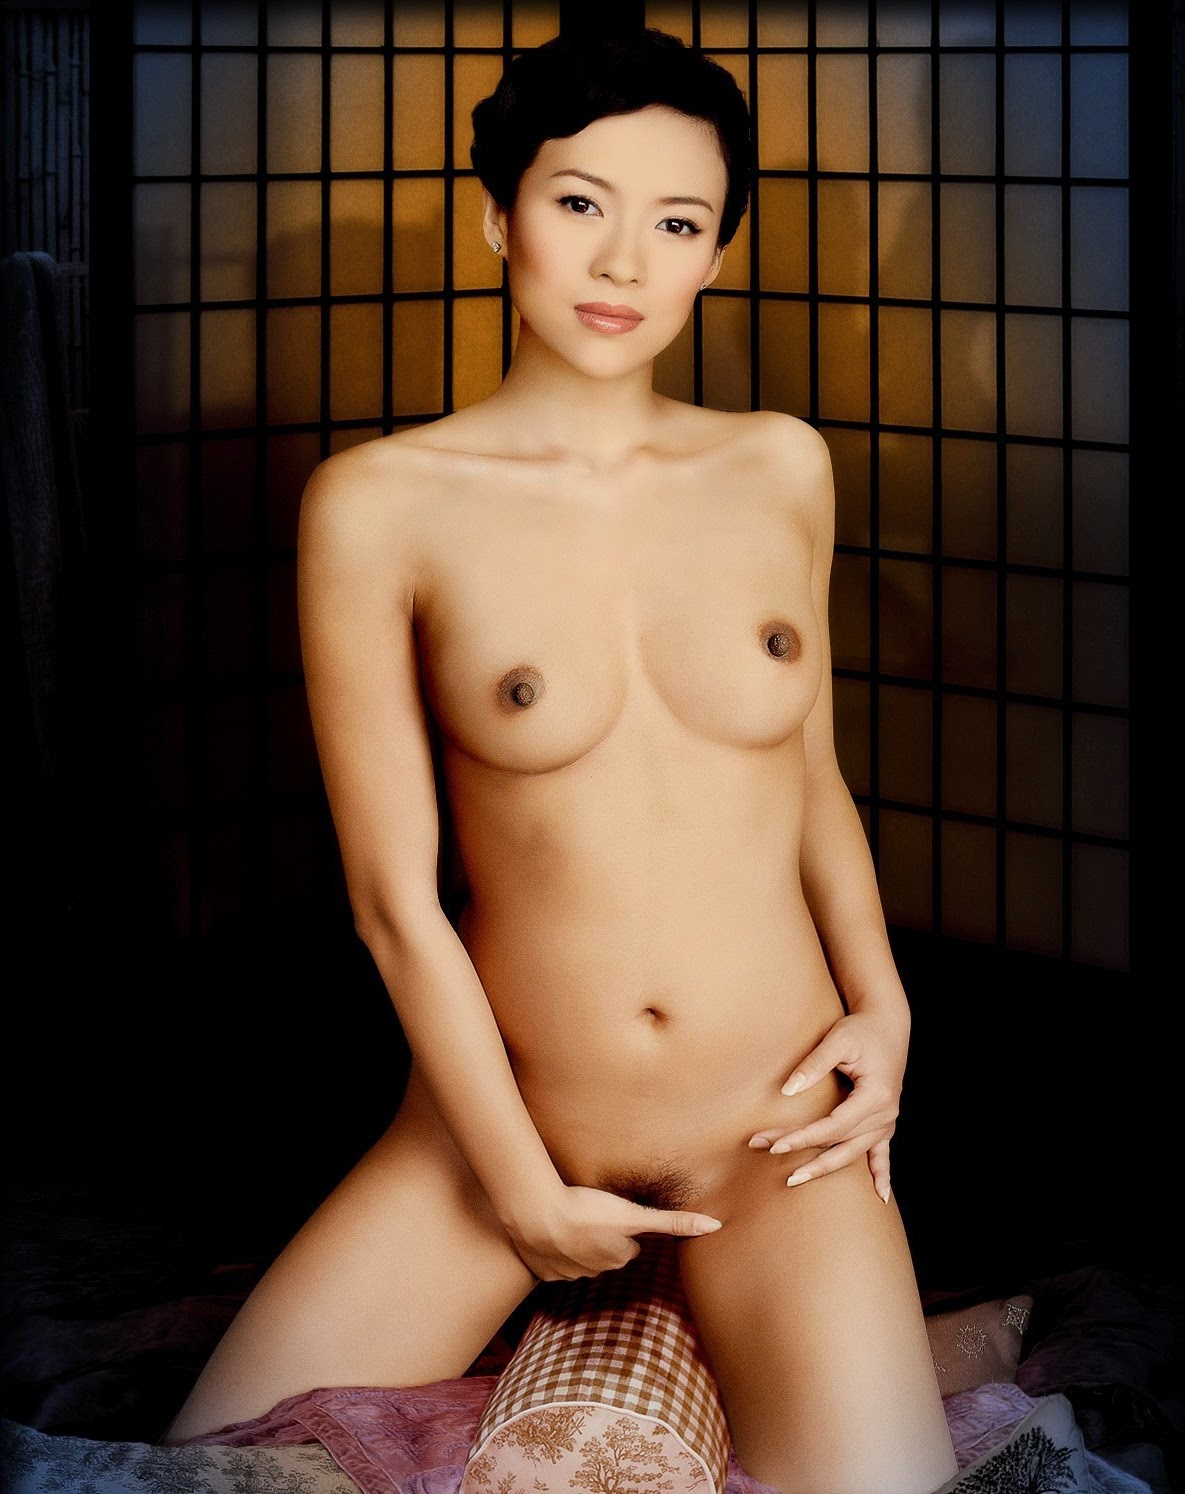 Asian women nudist photos